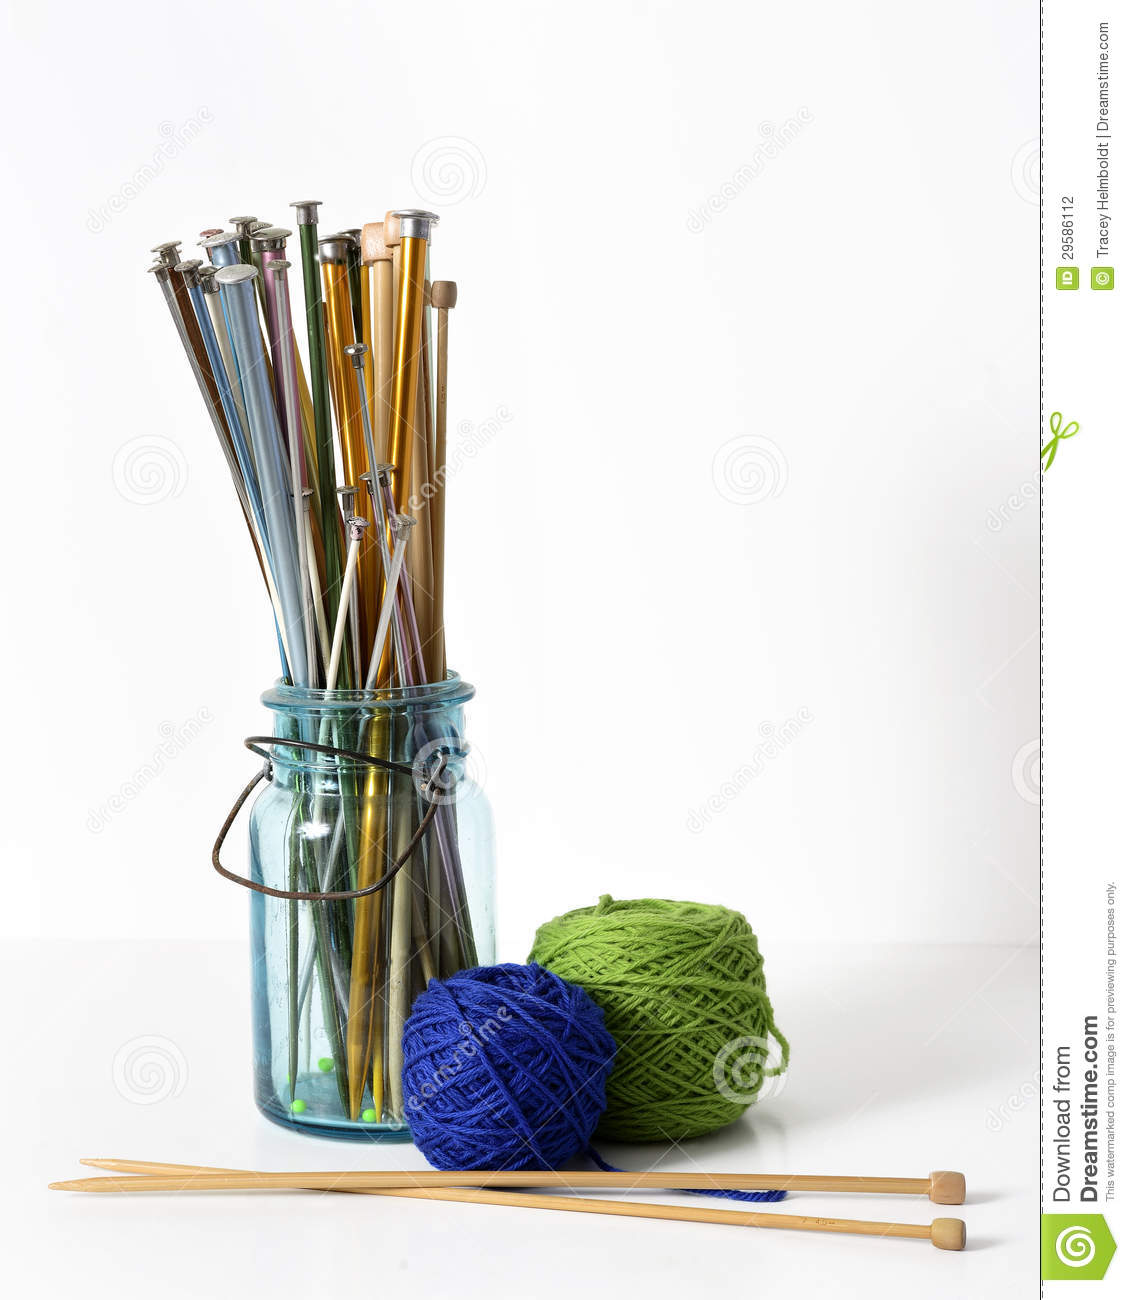 Knitting Needles And Yarn Stock Photography - Image: 29586112